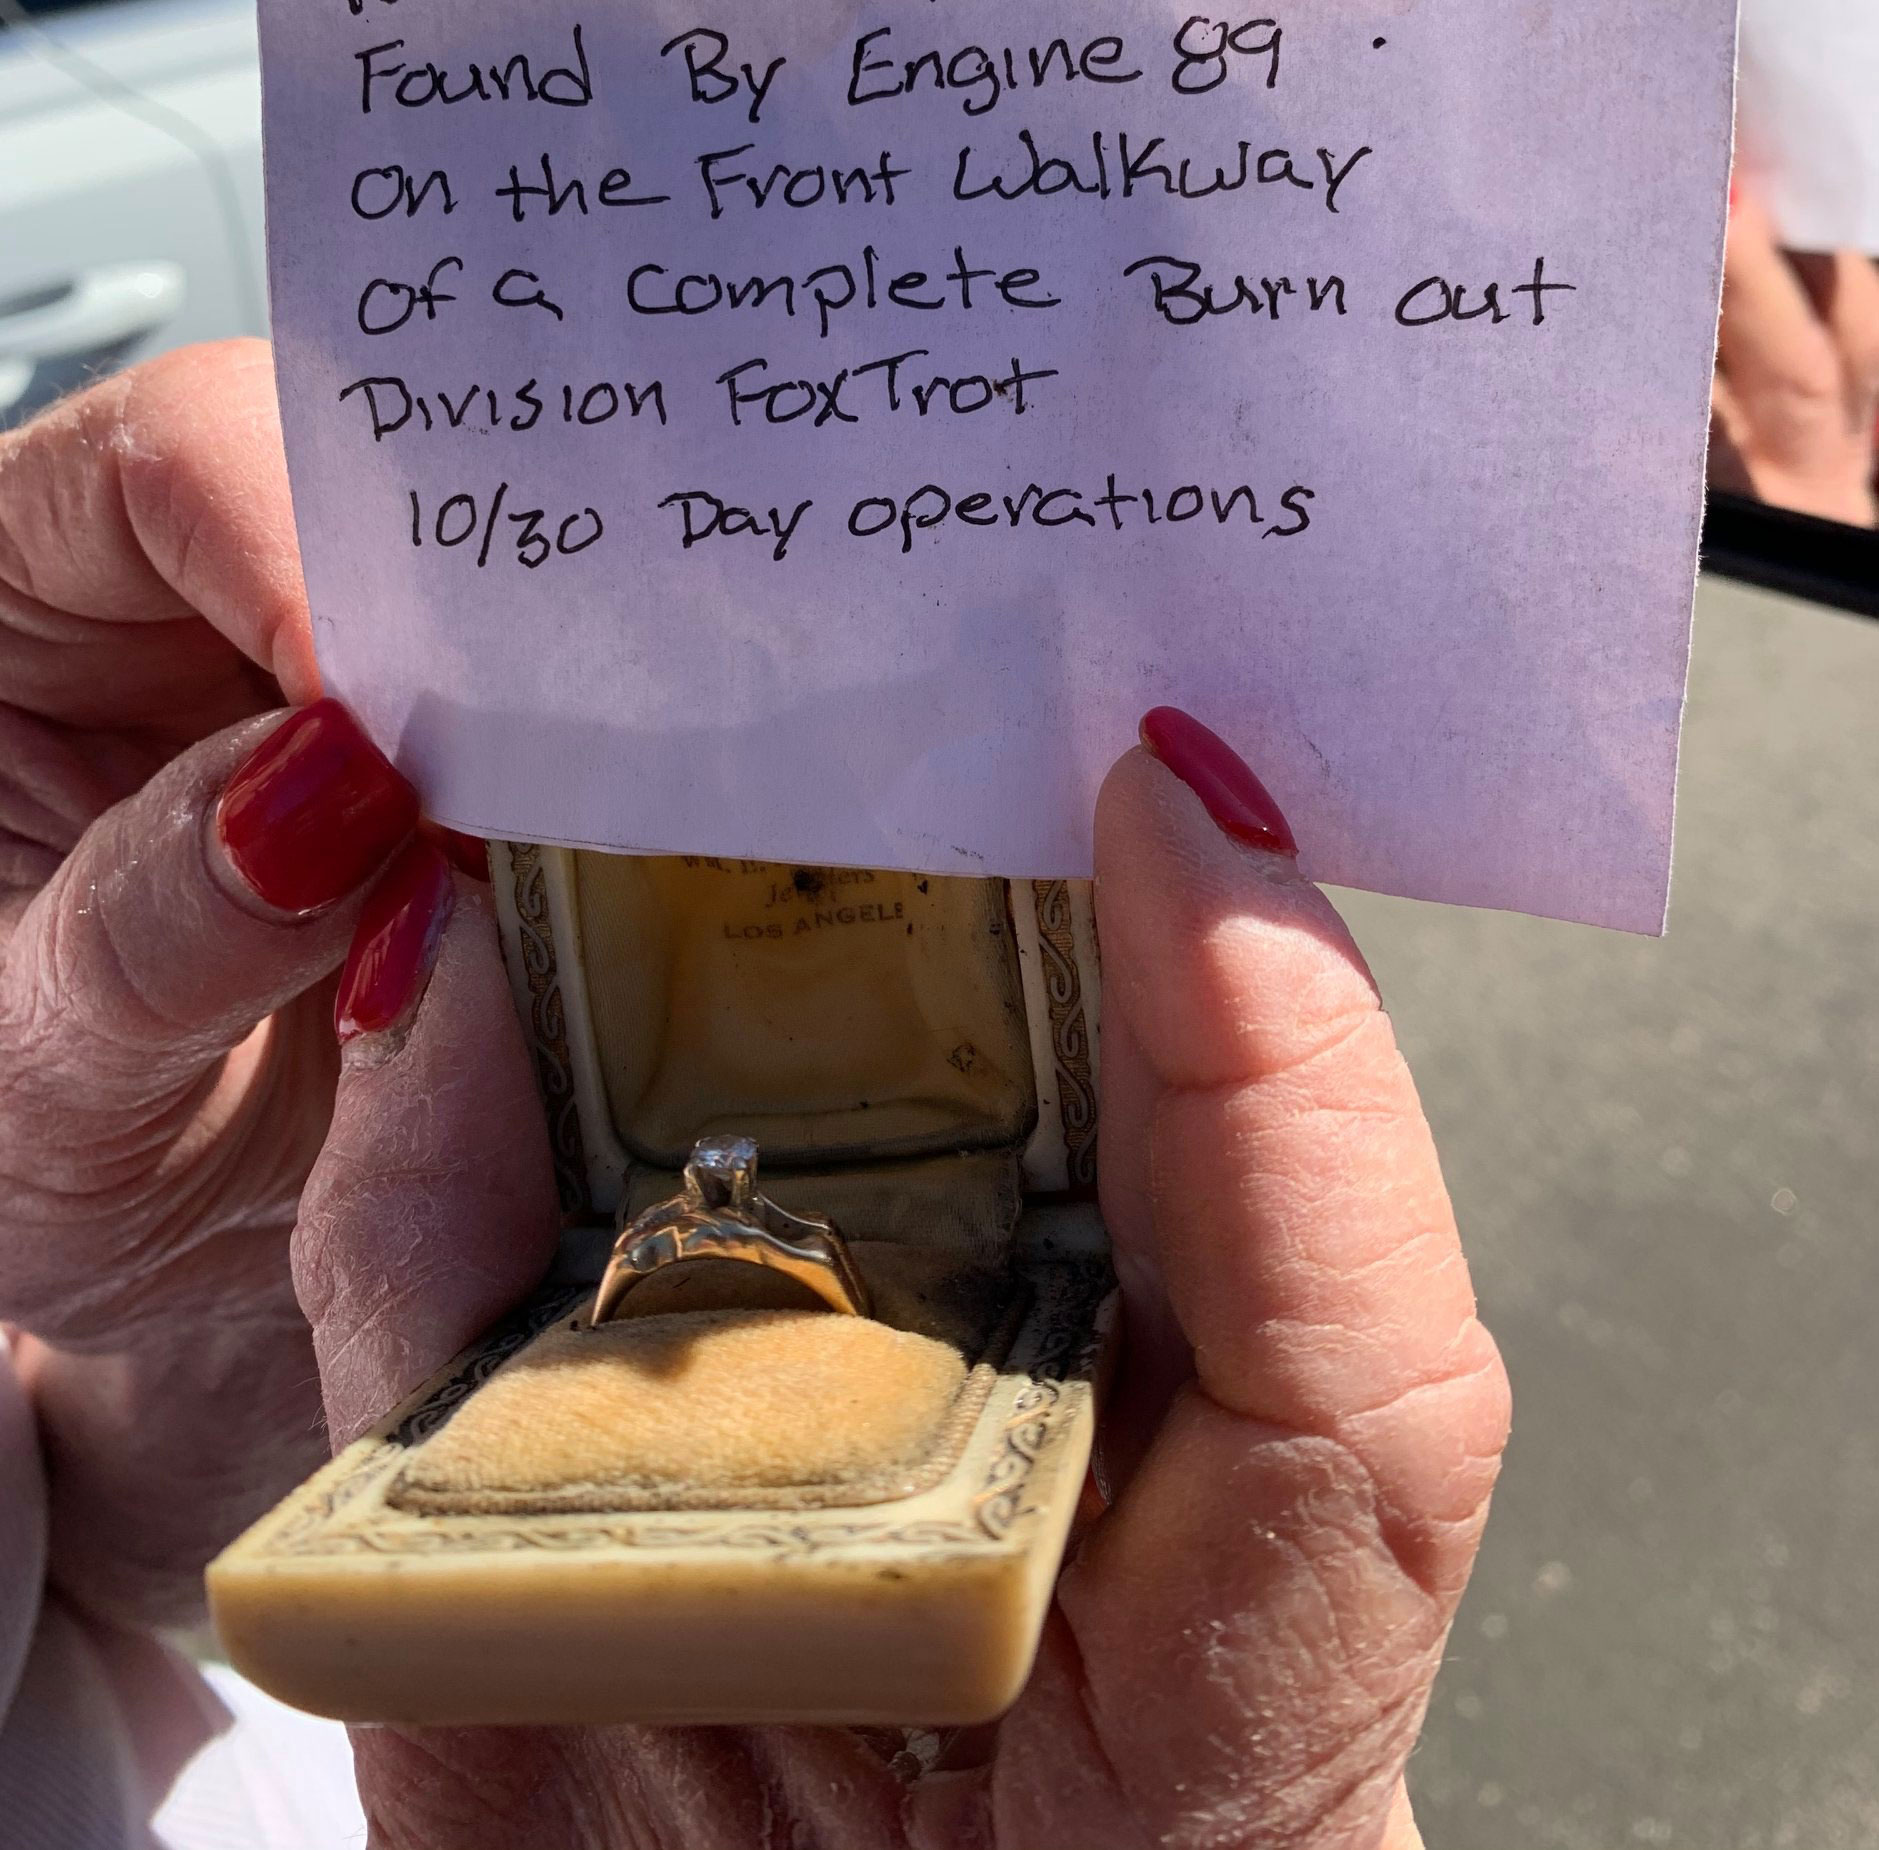 In 1961, 484 homes were destroyed by the Bel Air Fire. This past week, some of those same (rebuilt) homes were again destroyed in the #gettyfire. On October 30th, Engine 89 was working at the fire and found a small ring box out in front of the only home destroyed in that section of the street. Sitting there all by itself. When they opened it and saw the beautiful ring inside, they just knew this would be very important to the homeowner. They delivered it to the Command Post. A few days later, once residents were safely able to return to their homes, a couple LAFD officers set off on their mission to find the ring's owner. They found her. That ring belonged to her mother...who lived in the home when it was destroyed in 1961 and this ring - it was the only thing that survived. Her mother was with her in the home when they had to evacuate last week. And now, the ring is again the survivor...finding it's way to a spot where firefighters 'rescued' it. #wow The resident was speechless and beyond happy to have the ring back. Among the stories of heartbreak and devastation, these moments lighten our hearts. We hope this beloved family heirloom continues to bring joy and smiles to its family.